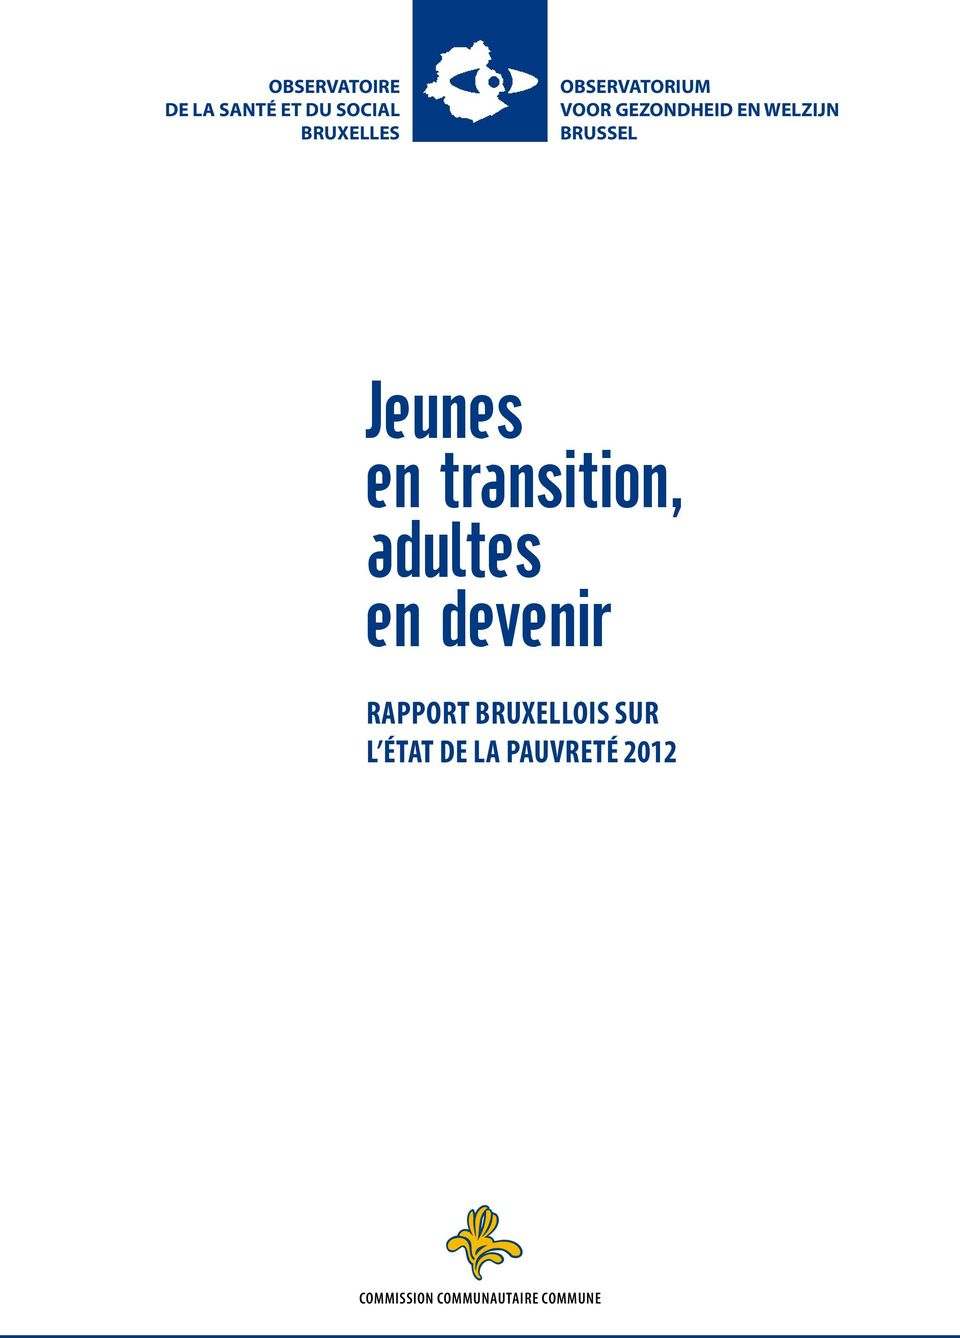 Jeunes en transition, adultes en devenir Rapport